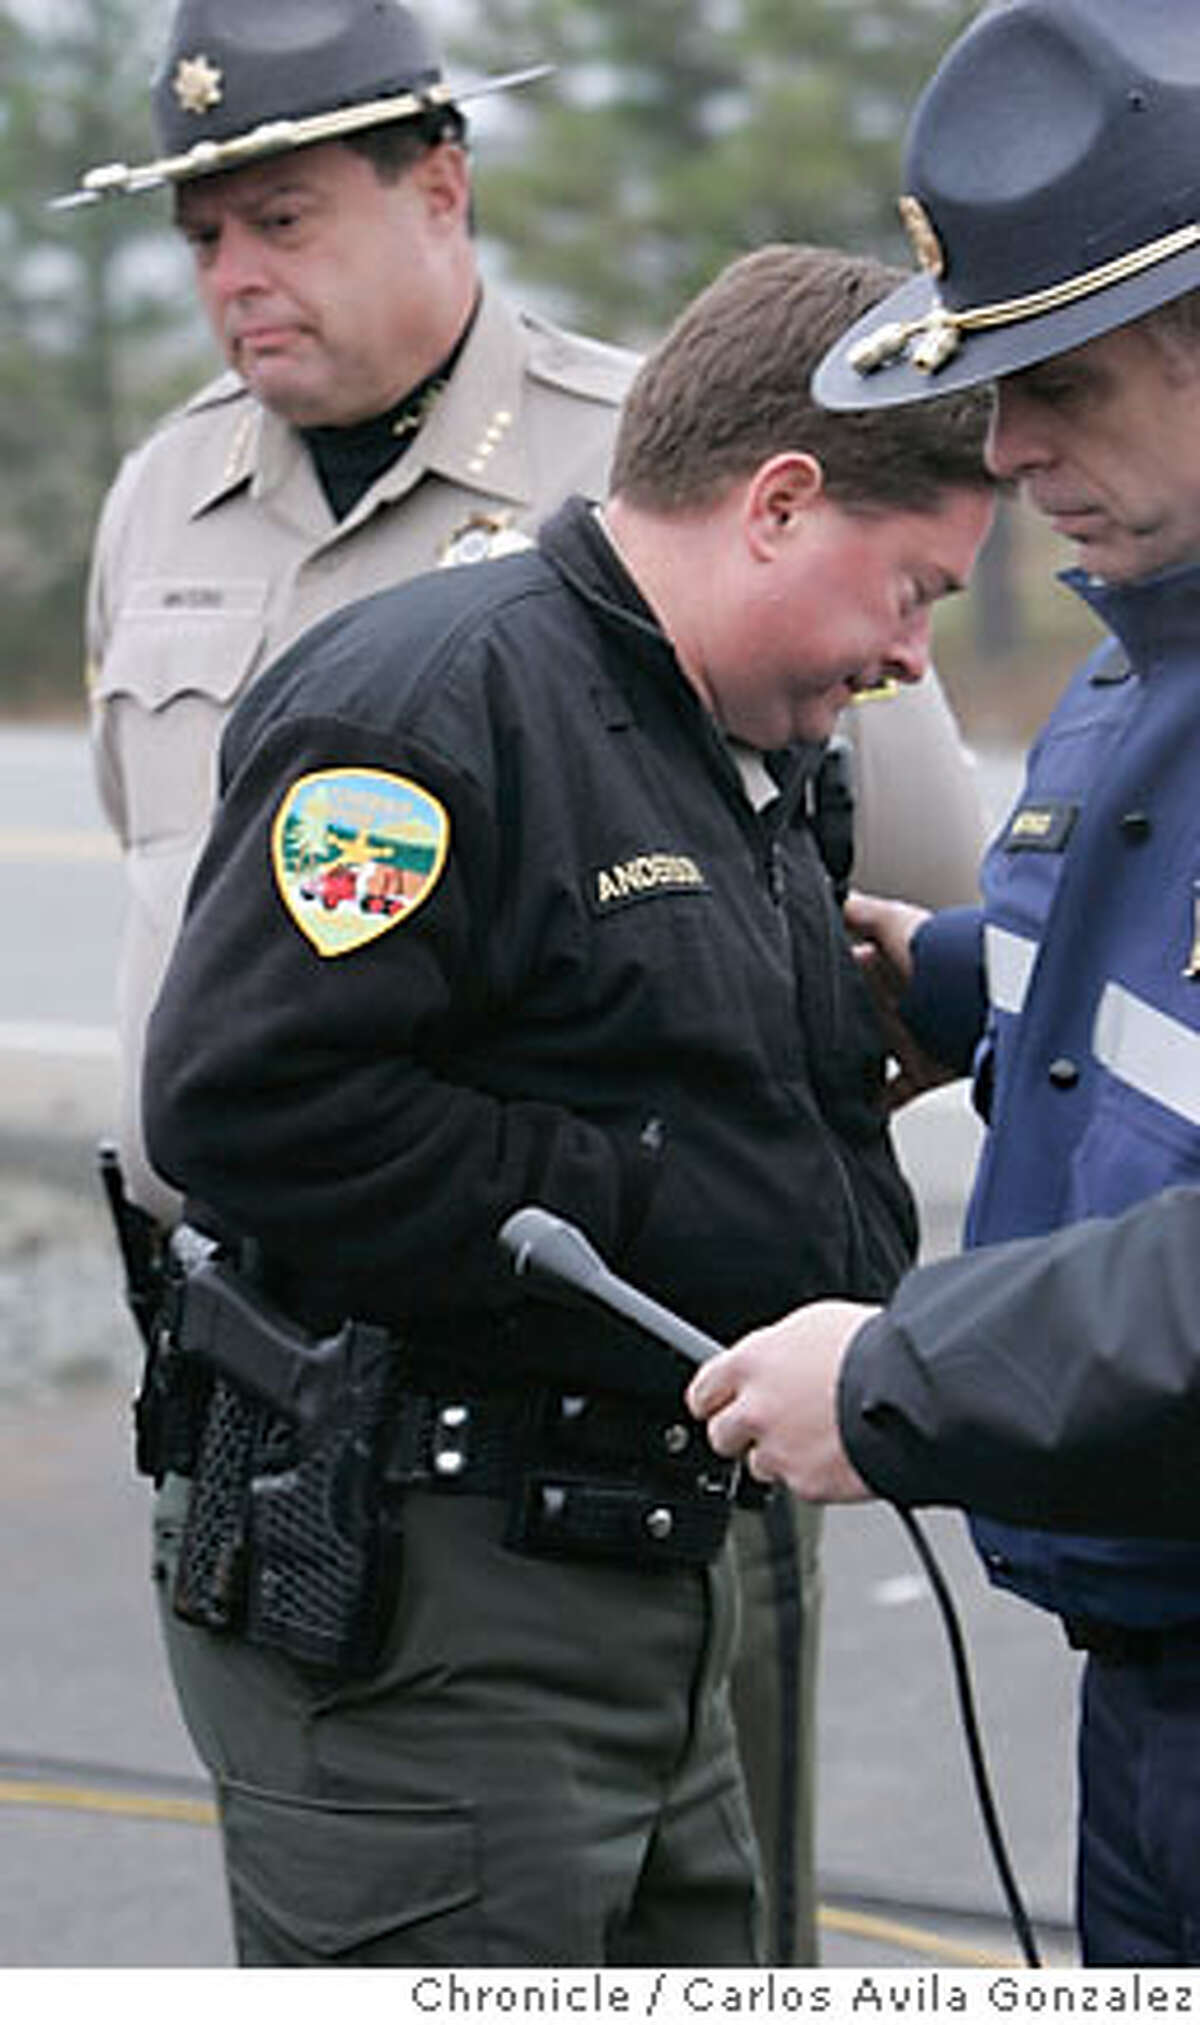 Josephine County Undersheriff Brian Anderson turns away from the news cameras as Oregon State Police Lt. Gregg Hastings consoles him after they announced that the body of James Kim had been located. Anderson was visibly upset by the news and could not finish his statement. Local and state authorities announced that their search for James Kim had concluded on Wednesday, December 6, 2006, after his body was discovered by search and rescue personnel. The San Francisco man whose family was rescued Monday after they were lost in the mountains outside of Merlin, Or., set out on foot to try to find help, but died as he attempted to bring assistance to his wife and two daughers. Photo by Carlos Avila Gonzalez/The San Francisco Chronicle Photo taken on 12/6/06, in Merlin, Or, USA. **All names cq (source)